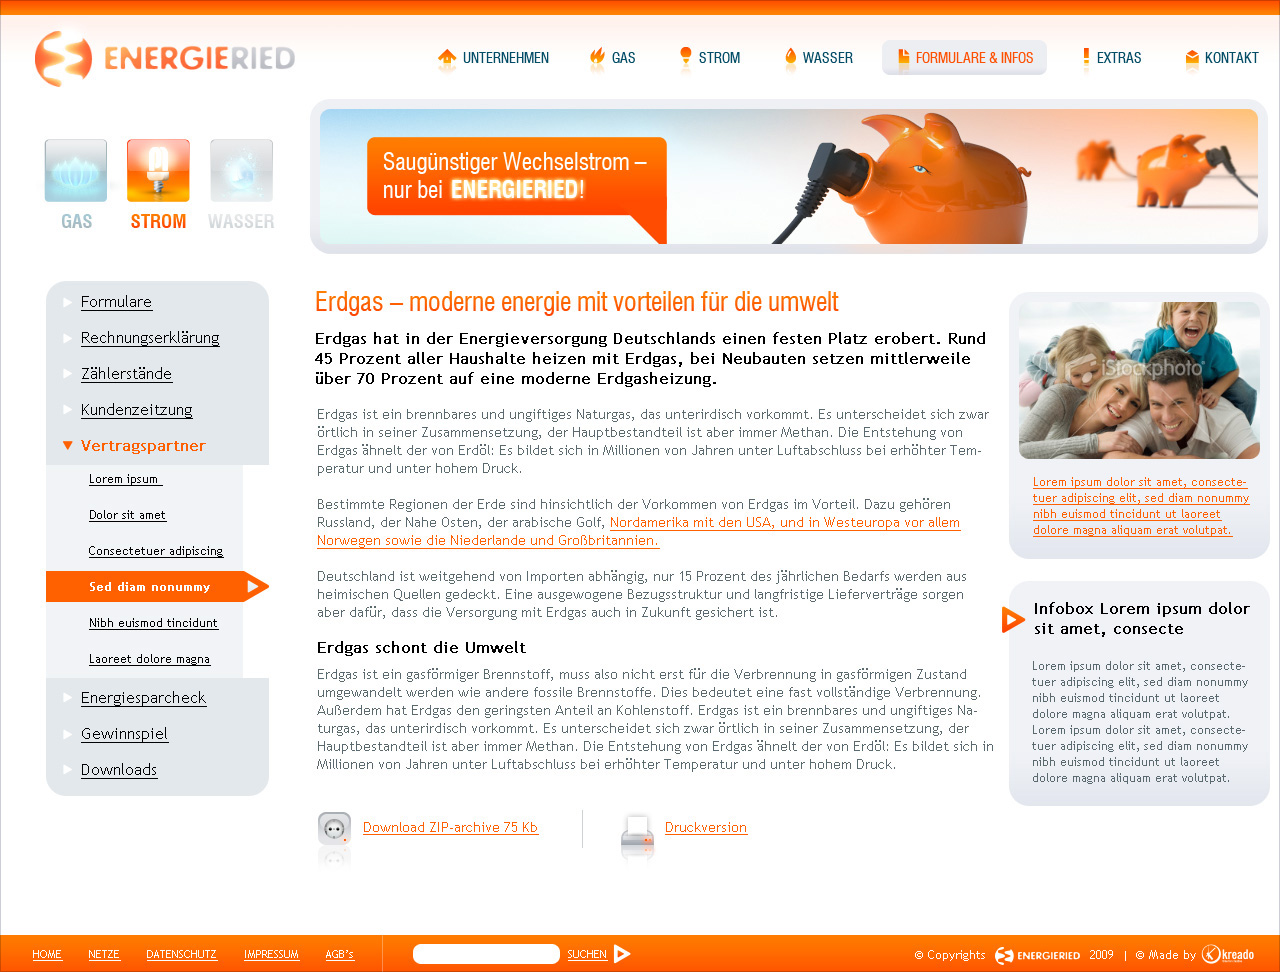 Energieried redesign, inside page.